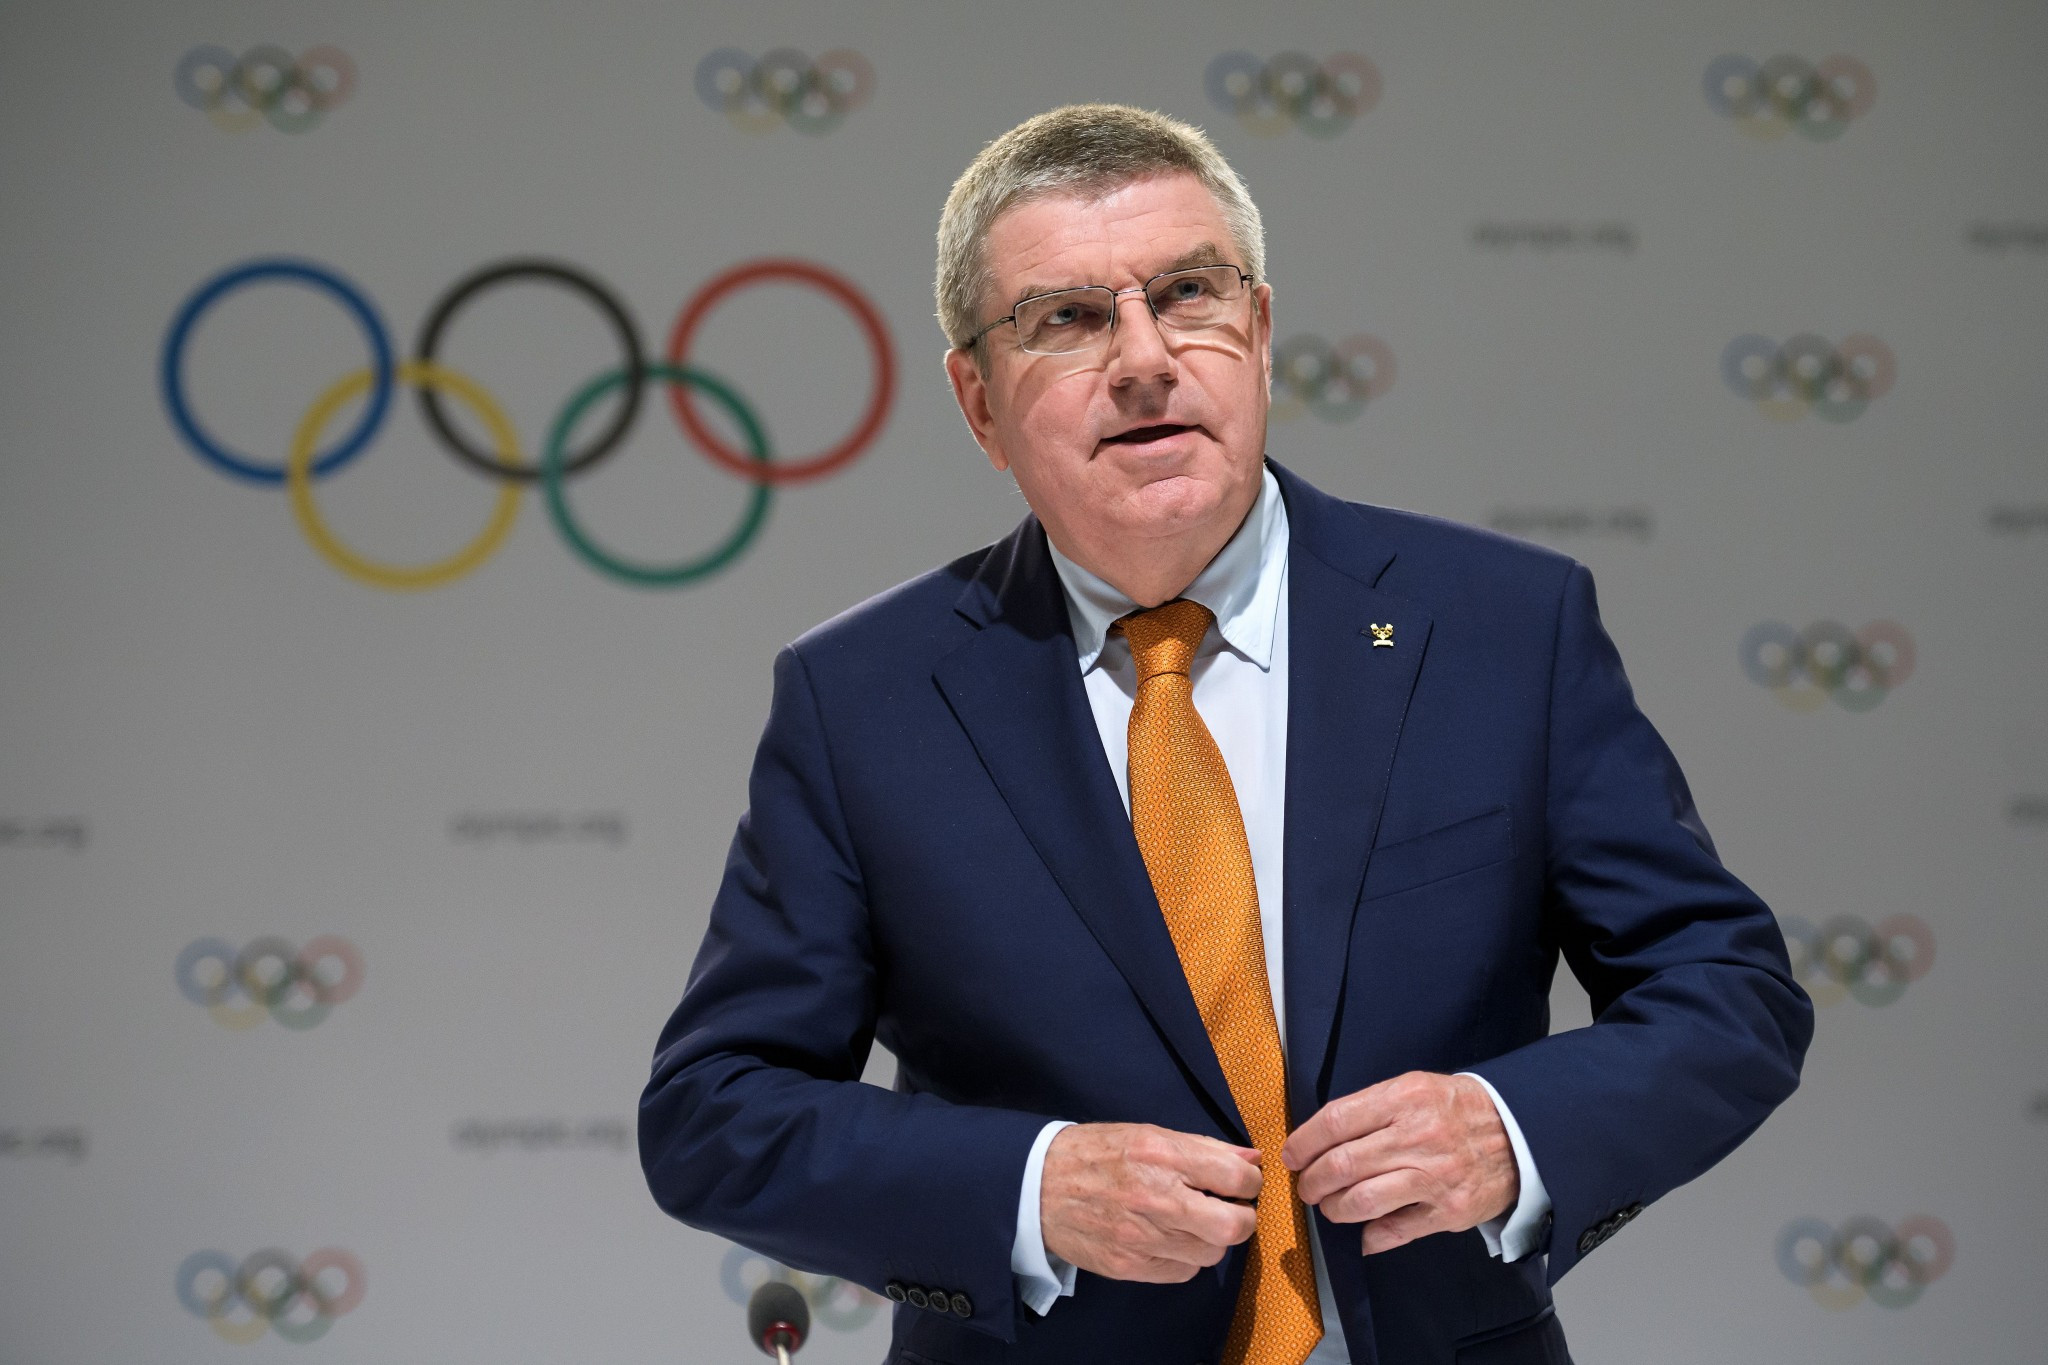 Thomas Bach has insisted the credibility issues currently facing the IOC are the fault of individuals and not the organisation as a whole ©Getty Images